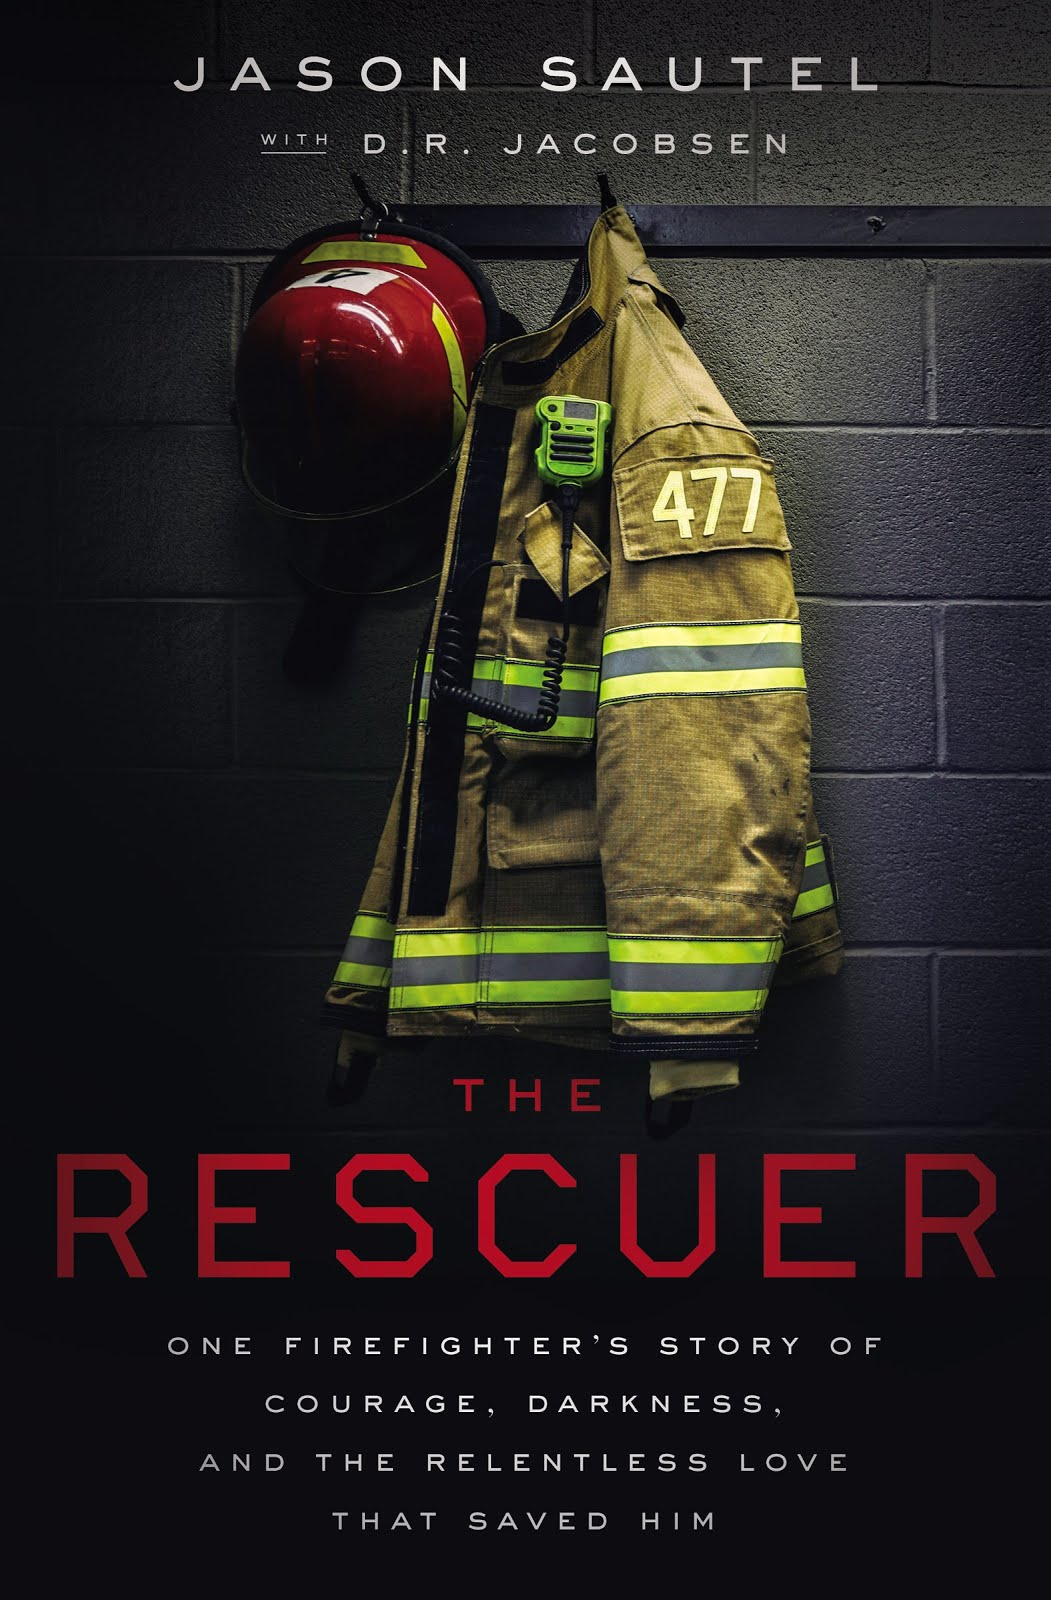 Giveaway - One Copy of The Rescuer by Jason Sautel